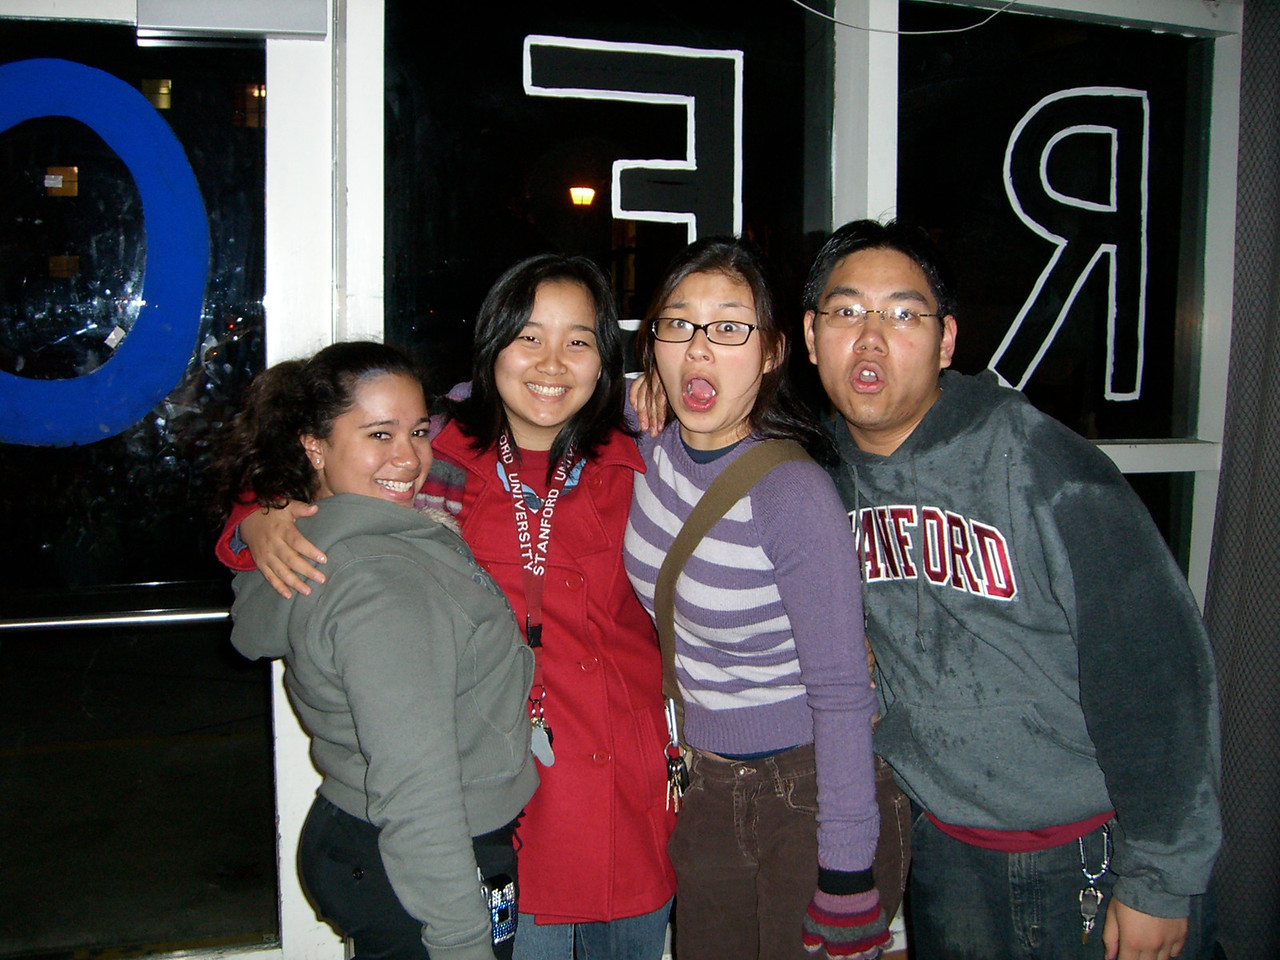 2006 03 01 Wed - David Chiang's B-day - Jennifer Evans, Esther Kang, Jenn Kim, & David Chiang